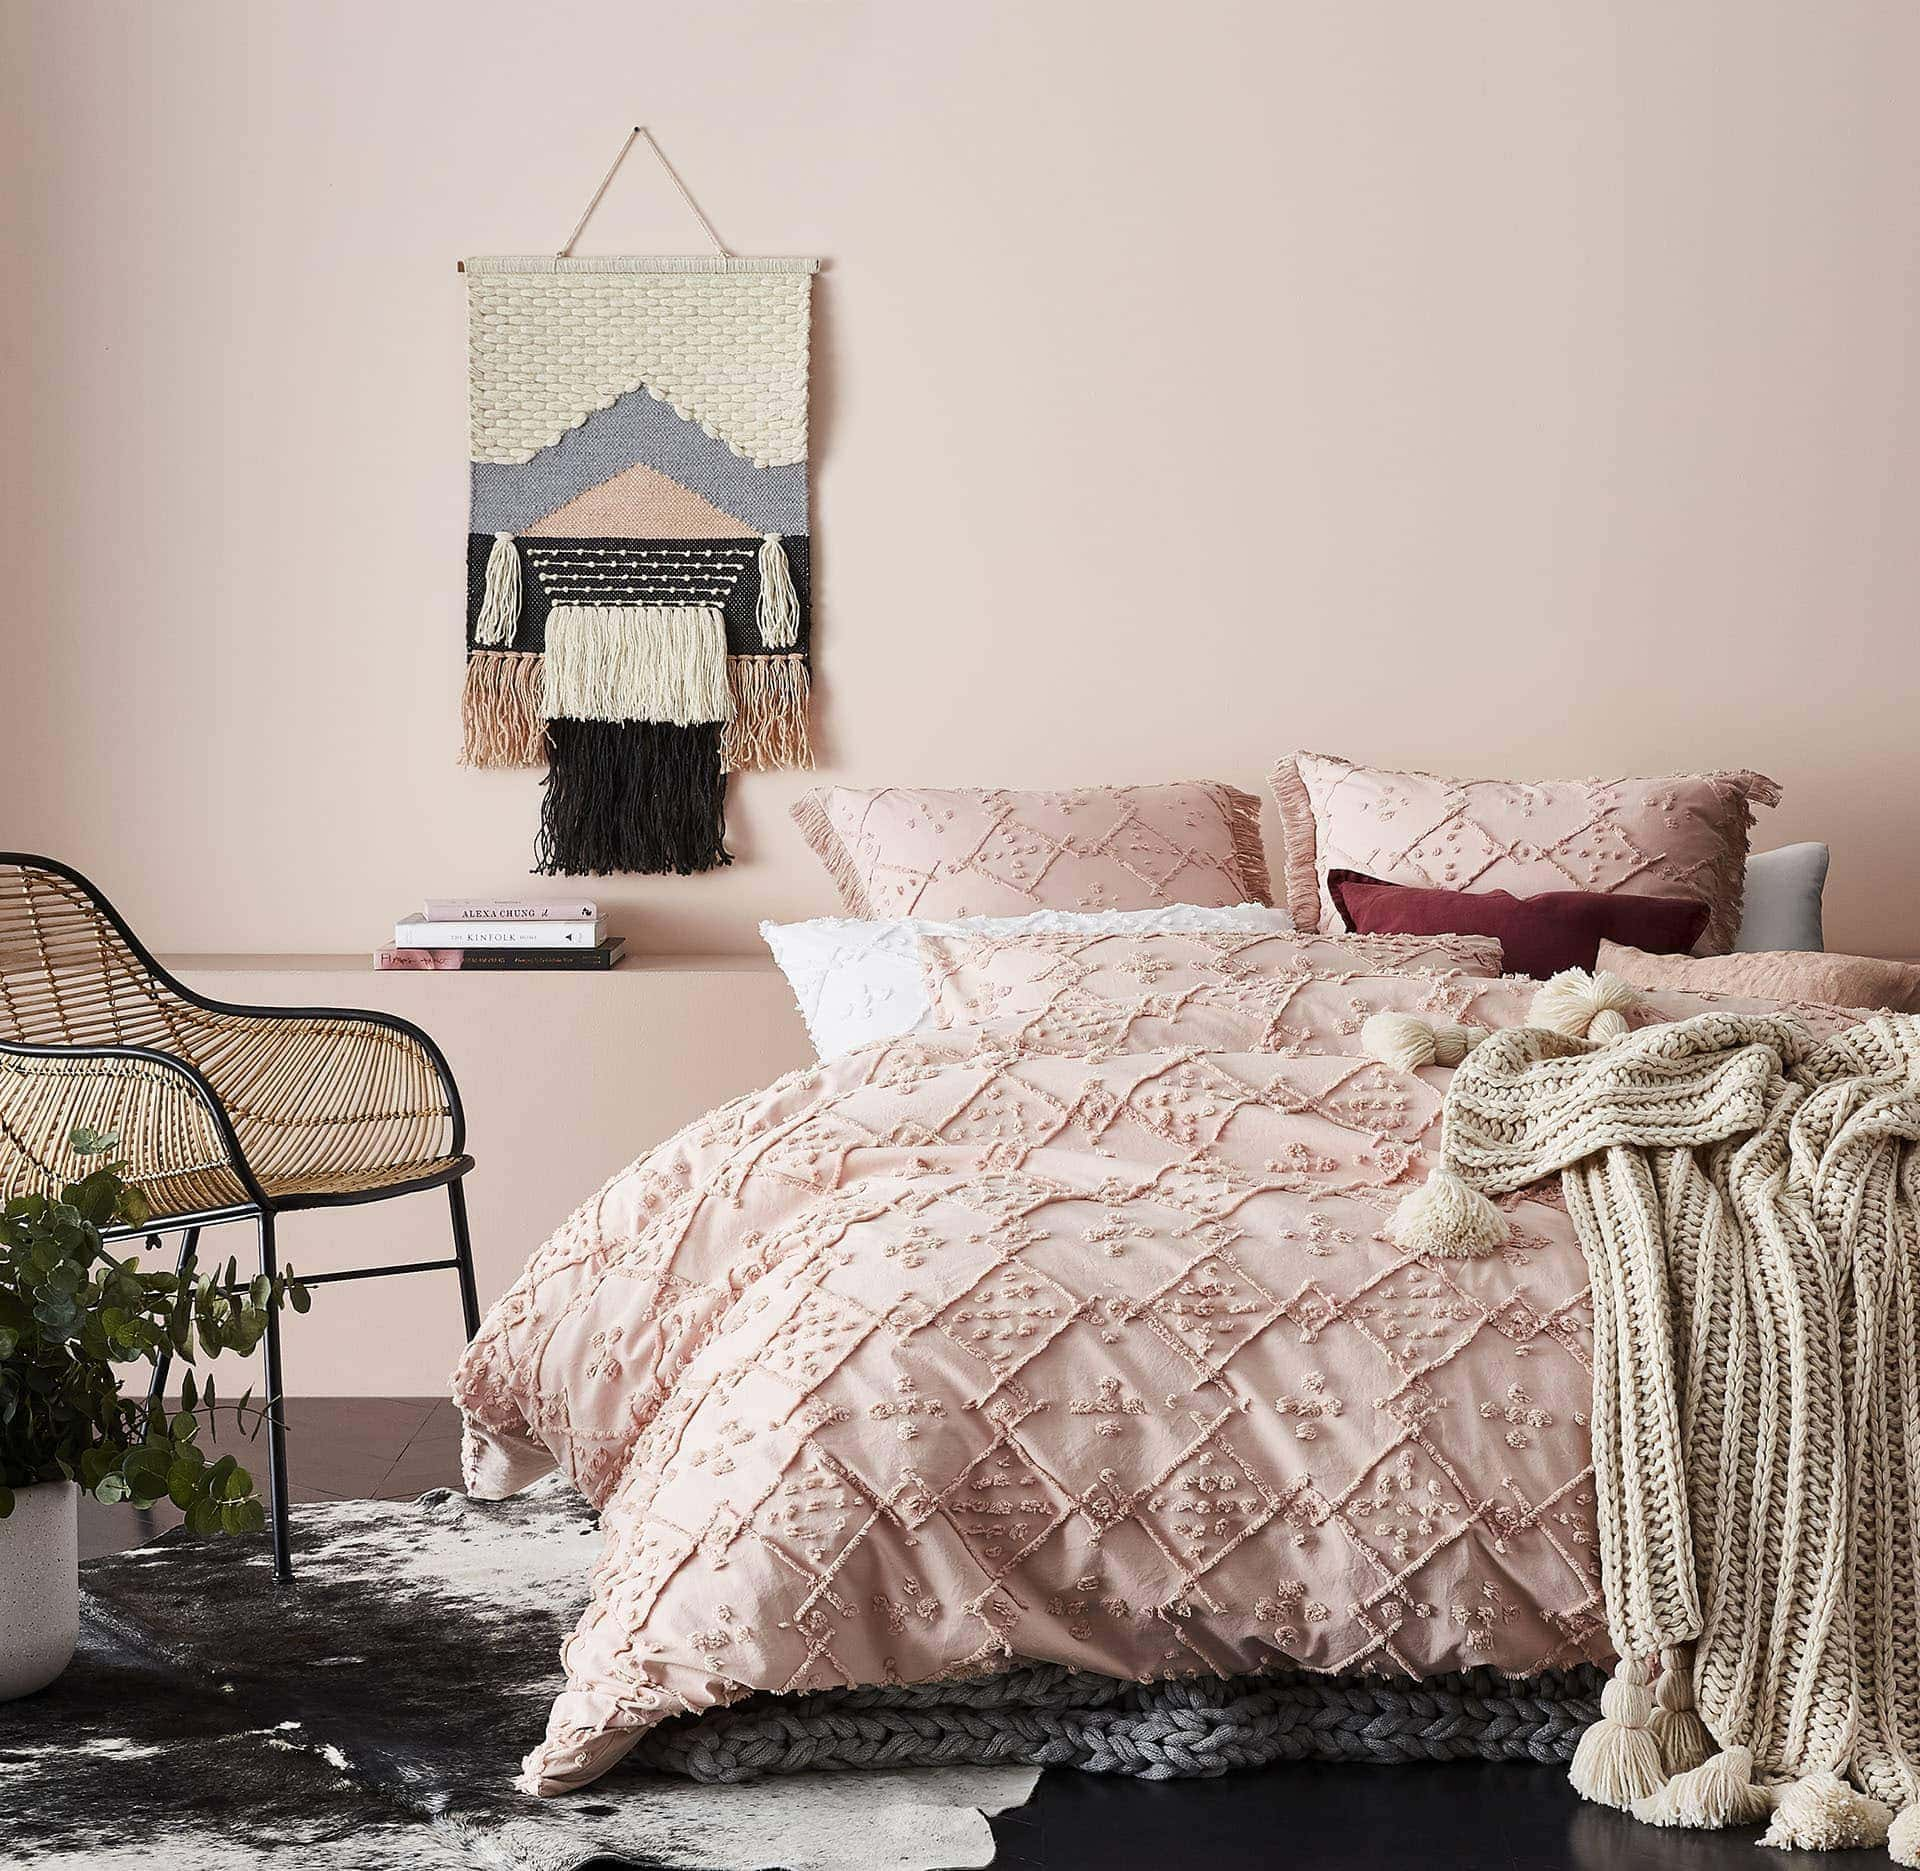 adairs pink bedding with diamond shapes and beige throw with tassels